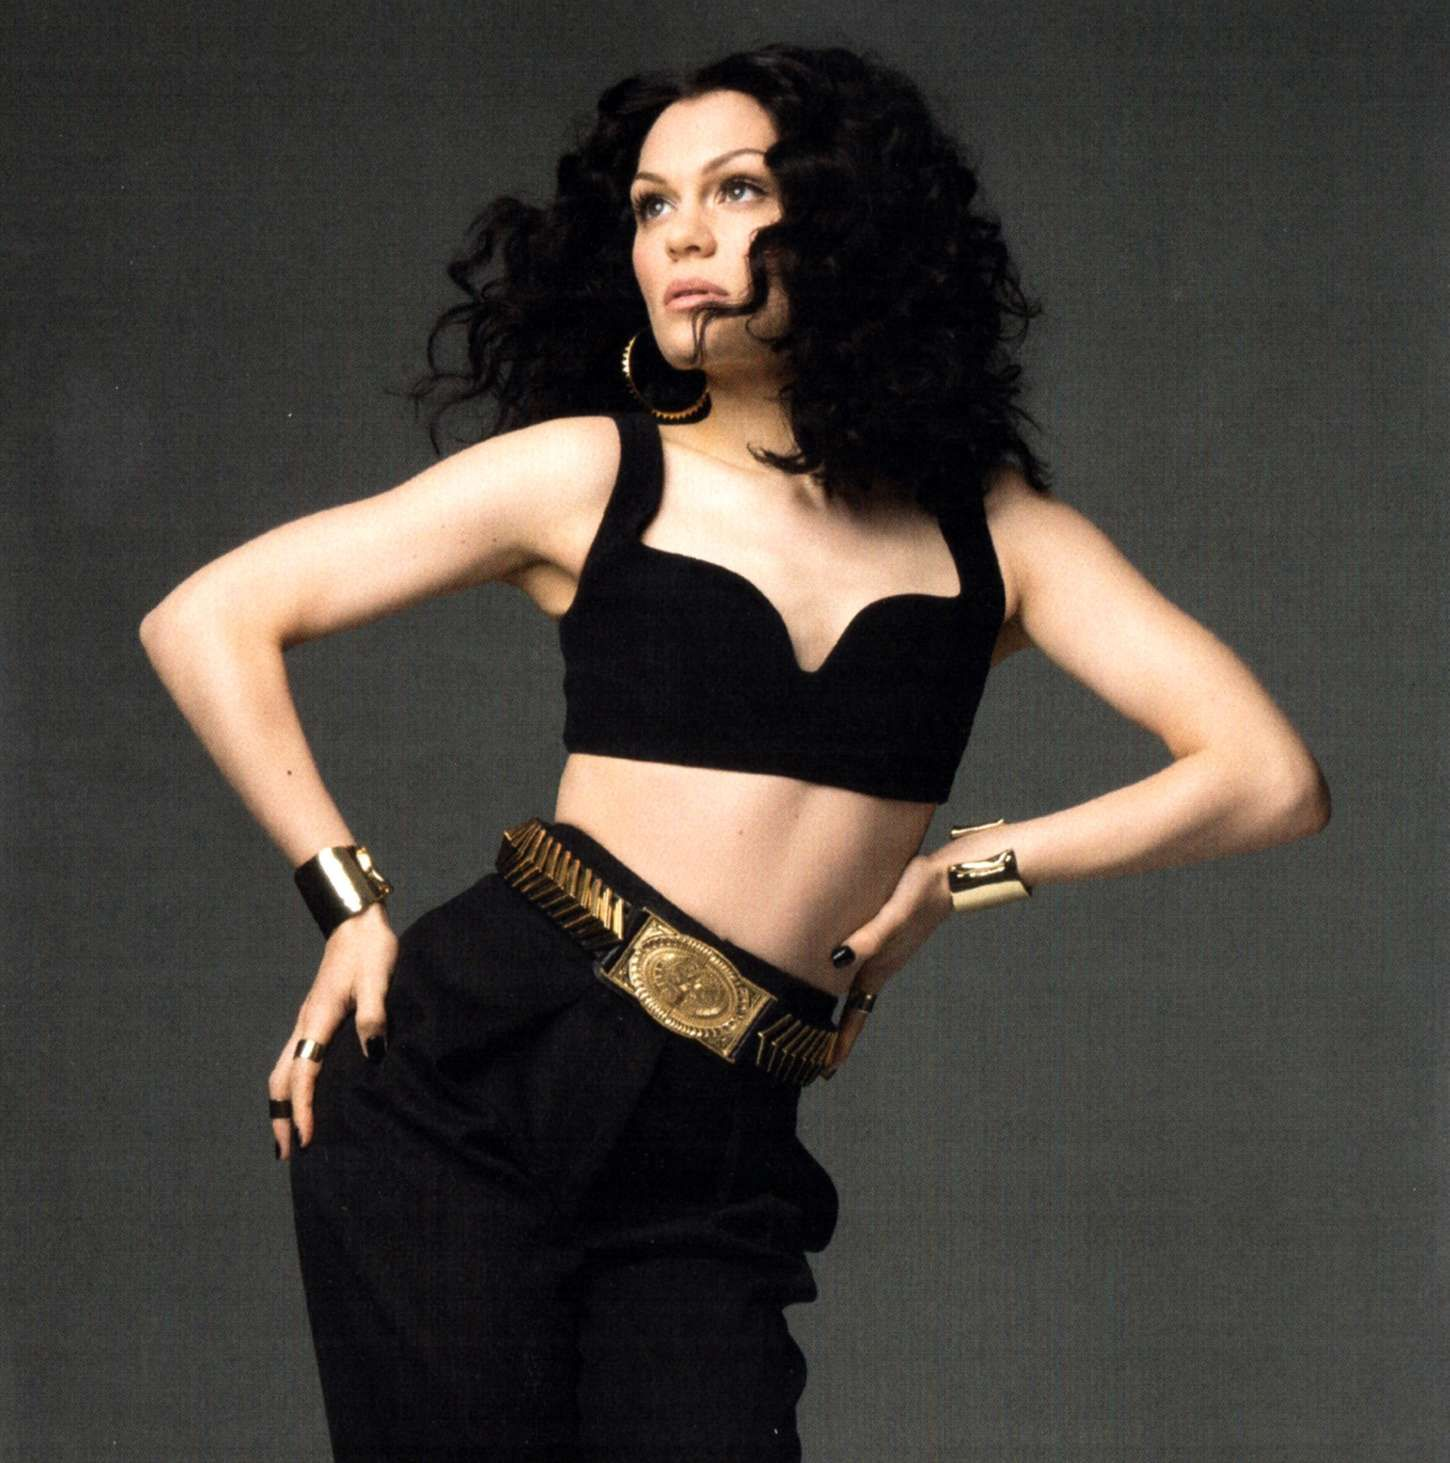 Jessie J Фото jessie j photoshoot - google search | jessie j, jessie, new